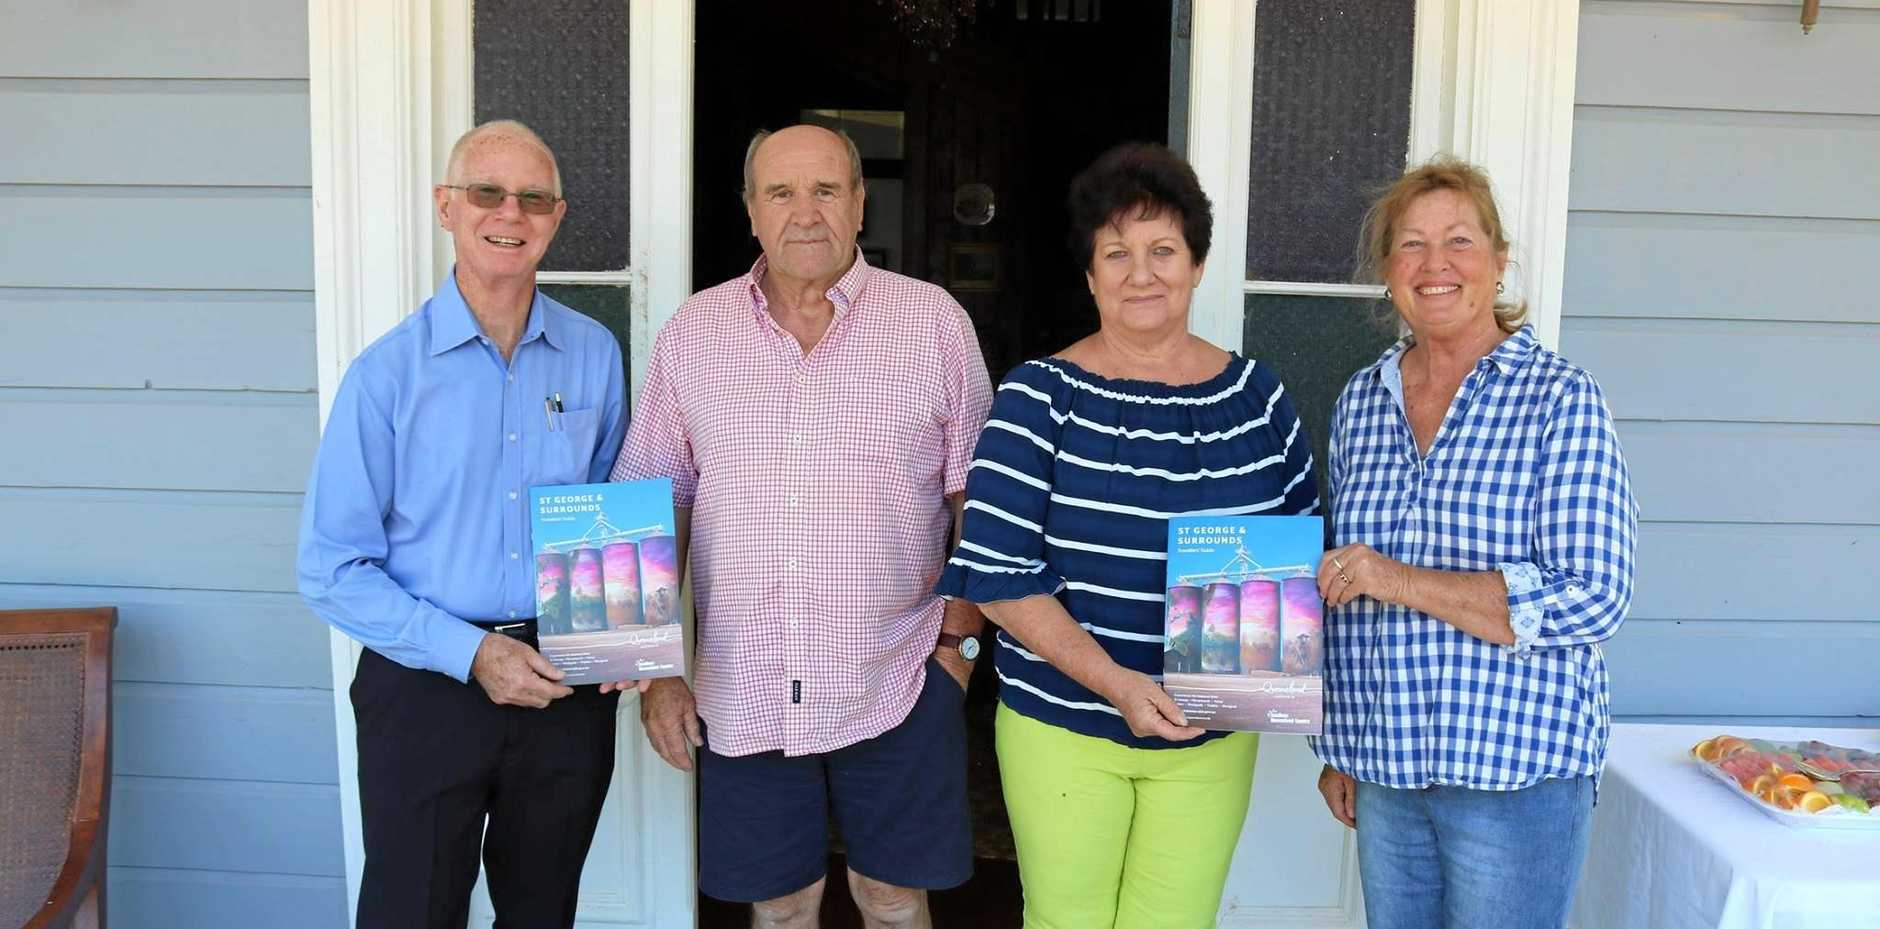 PROUD LOCALS: Mayor Richard Marsh, John Teunis, Robyn Fuhrmeister, Janice Teunis at the Anchorage for the launch of the new Balonne Shire Council tourism brochure.